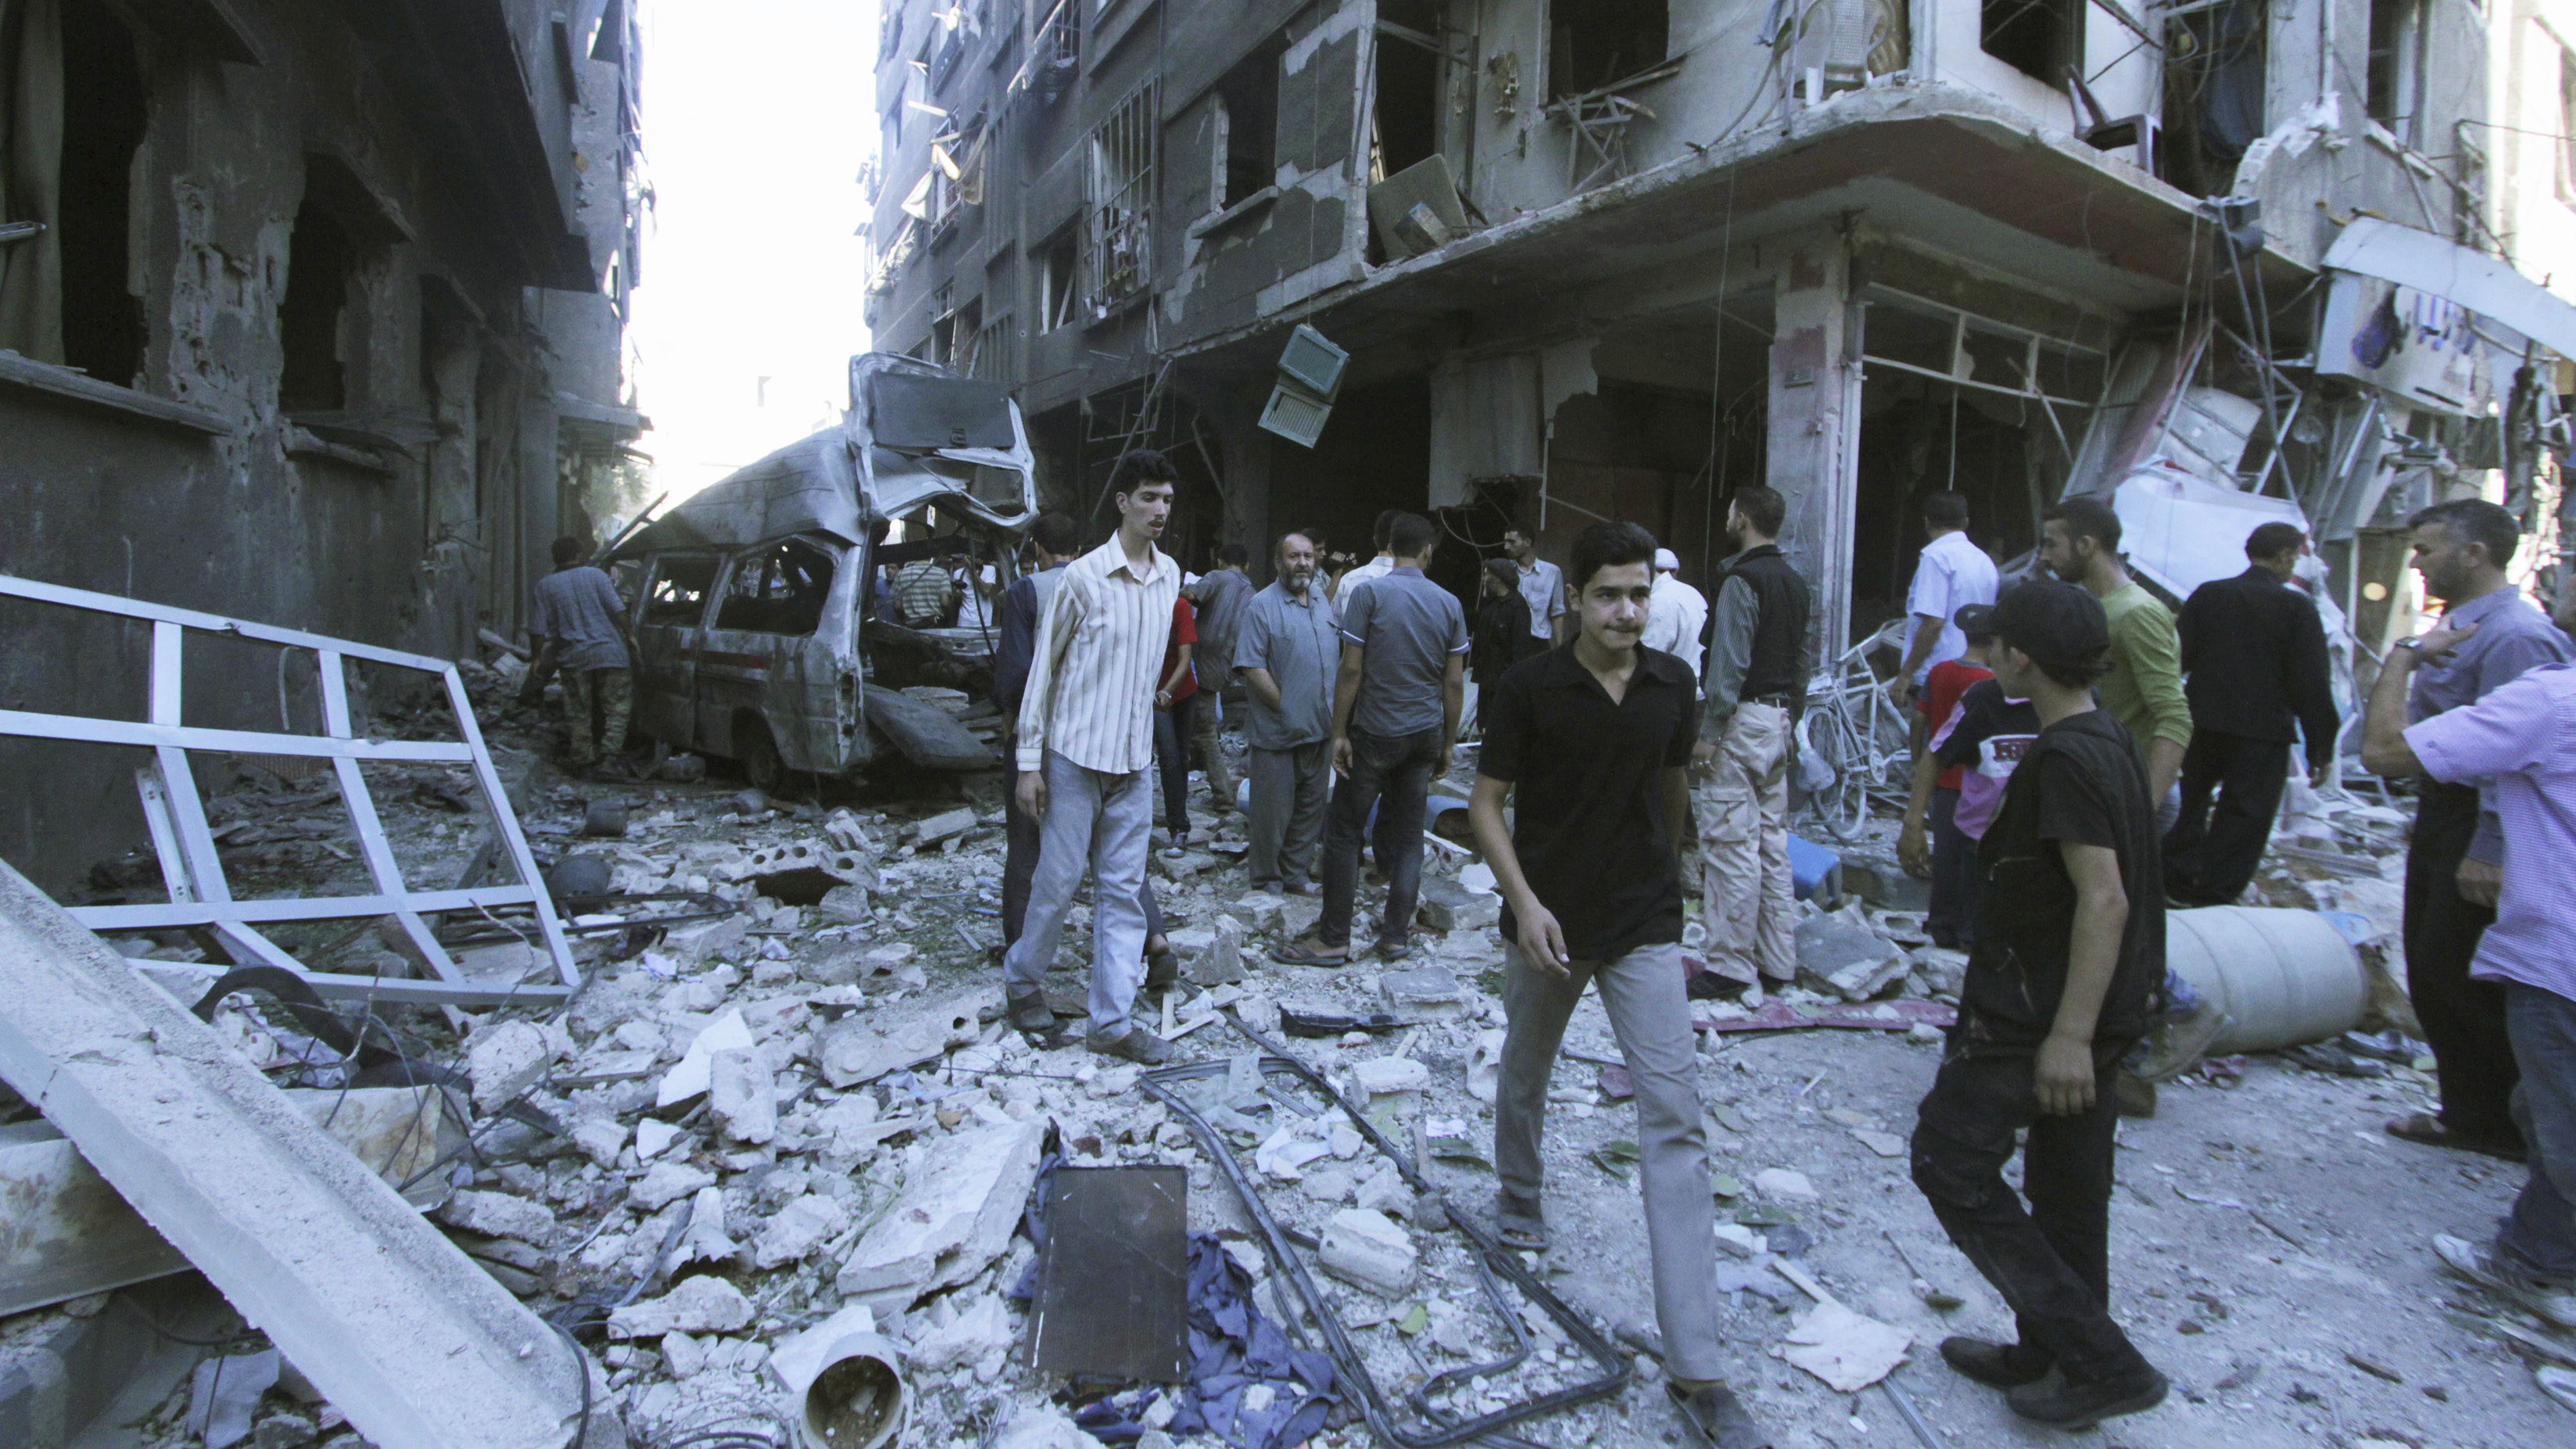 A Year Later, Syria's Chemical Weapons Are Gone, But Siege Remains